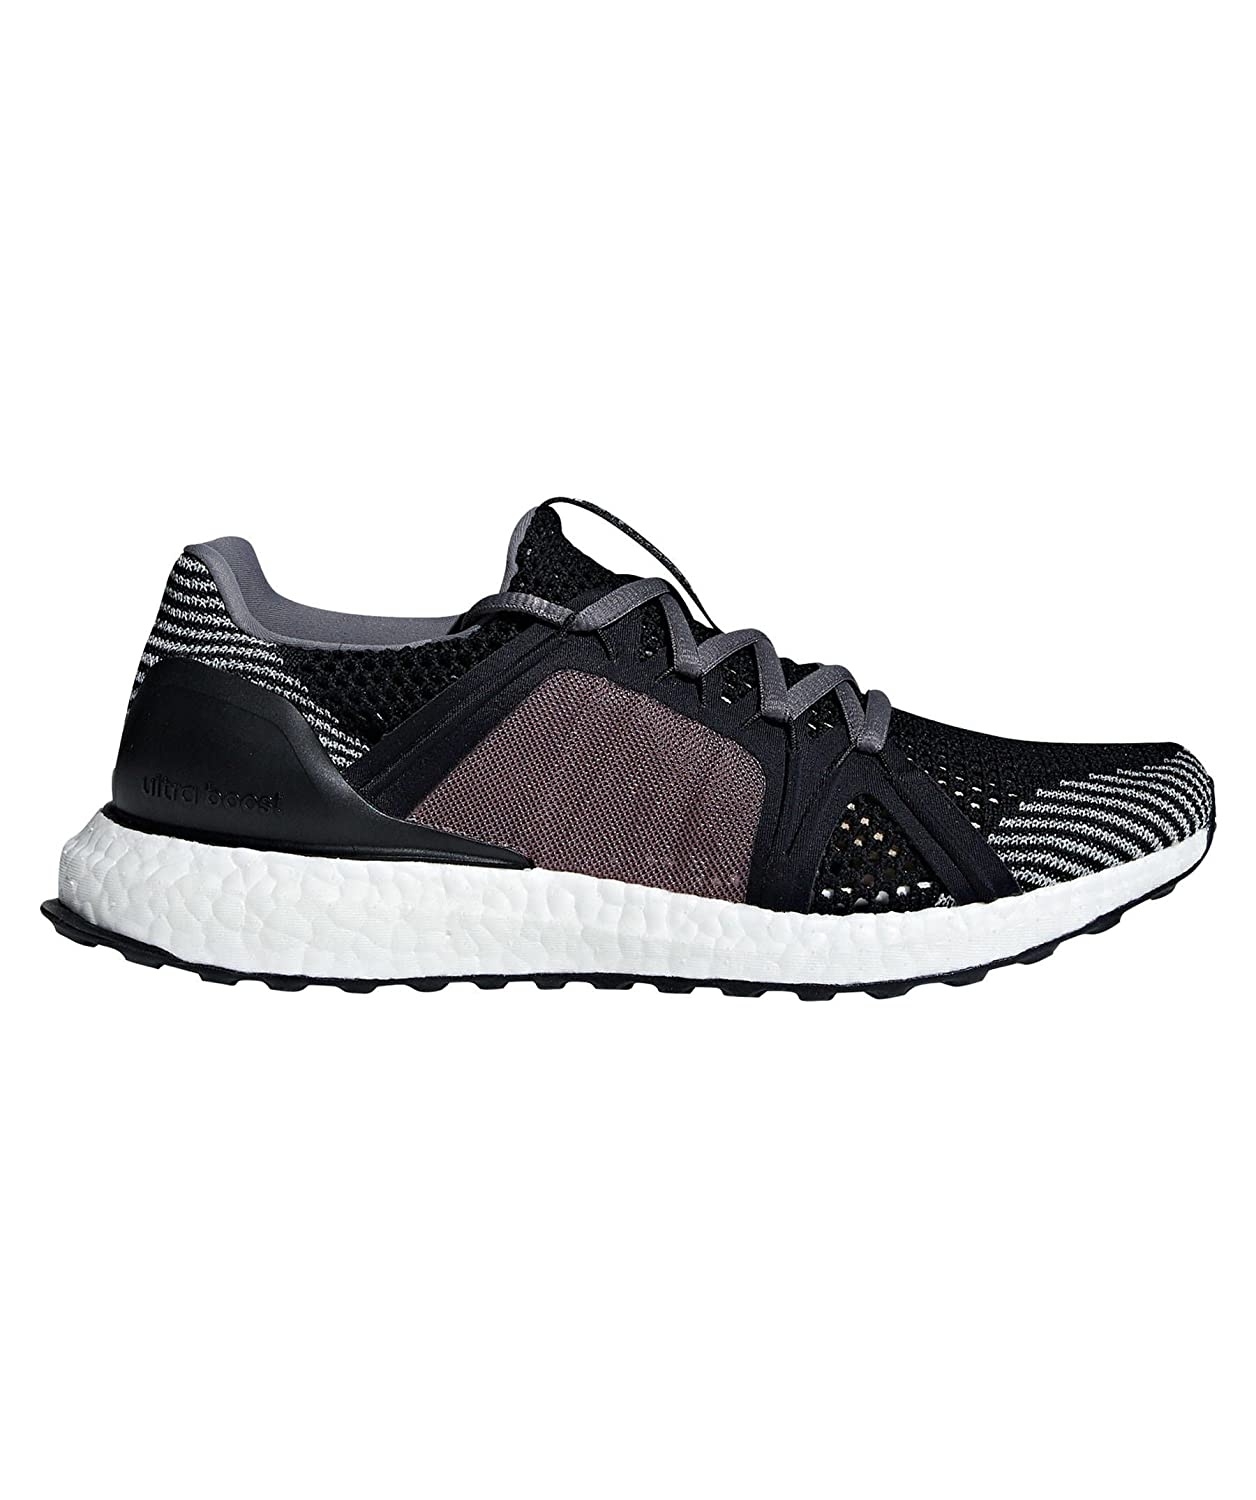 f1d433cca Stella McCartney Ultra Boost Trainers Black  Amazon.co.uk  Shoes   Bags